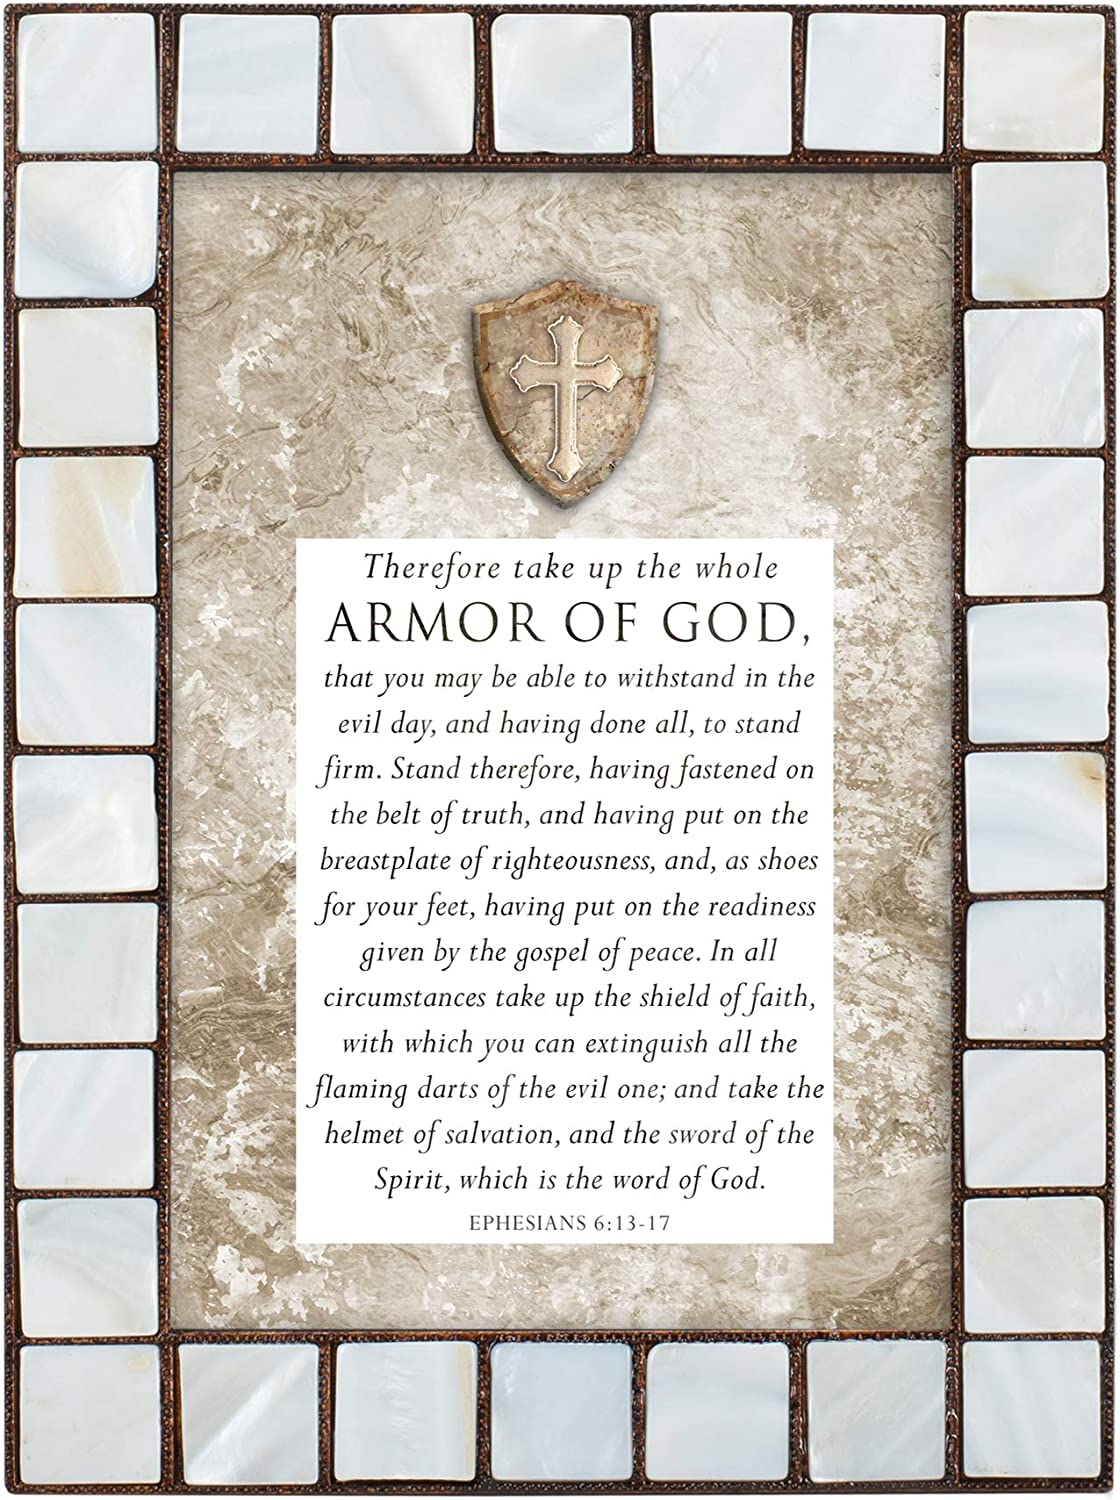 Cottage Garden Amor of God Mother of Pearl Amber 5 x 7 Table Top and Wall Photo Frame